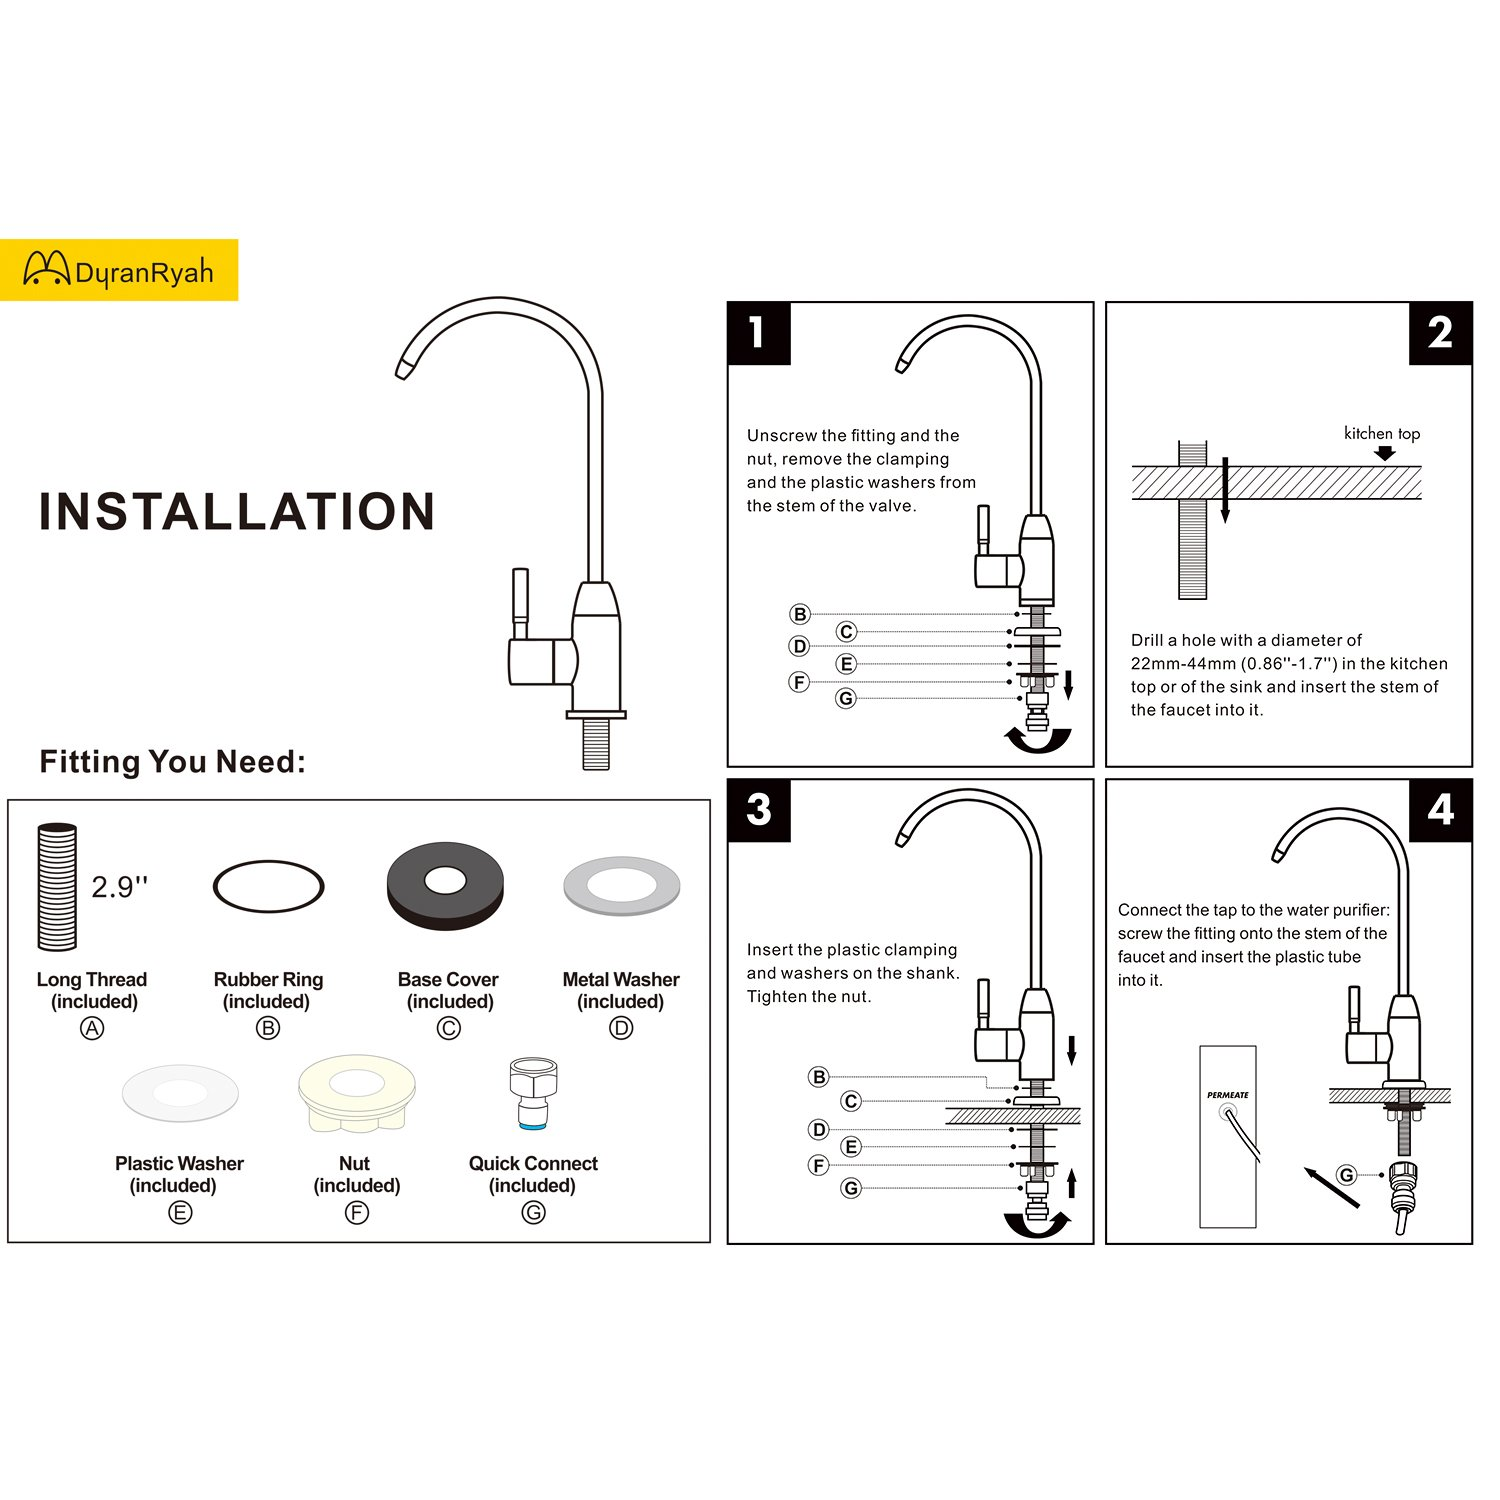 DuranRyan RO Drinking Water SUS304 Stainless Steel Faucet for RO Reverse Osmosis & Filter with Matte Black Finish by DuranRyan (Image #9)